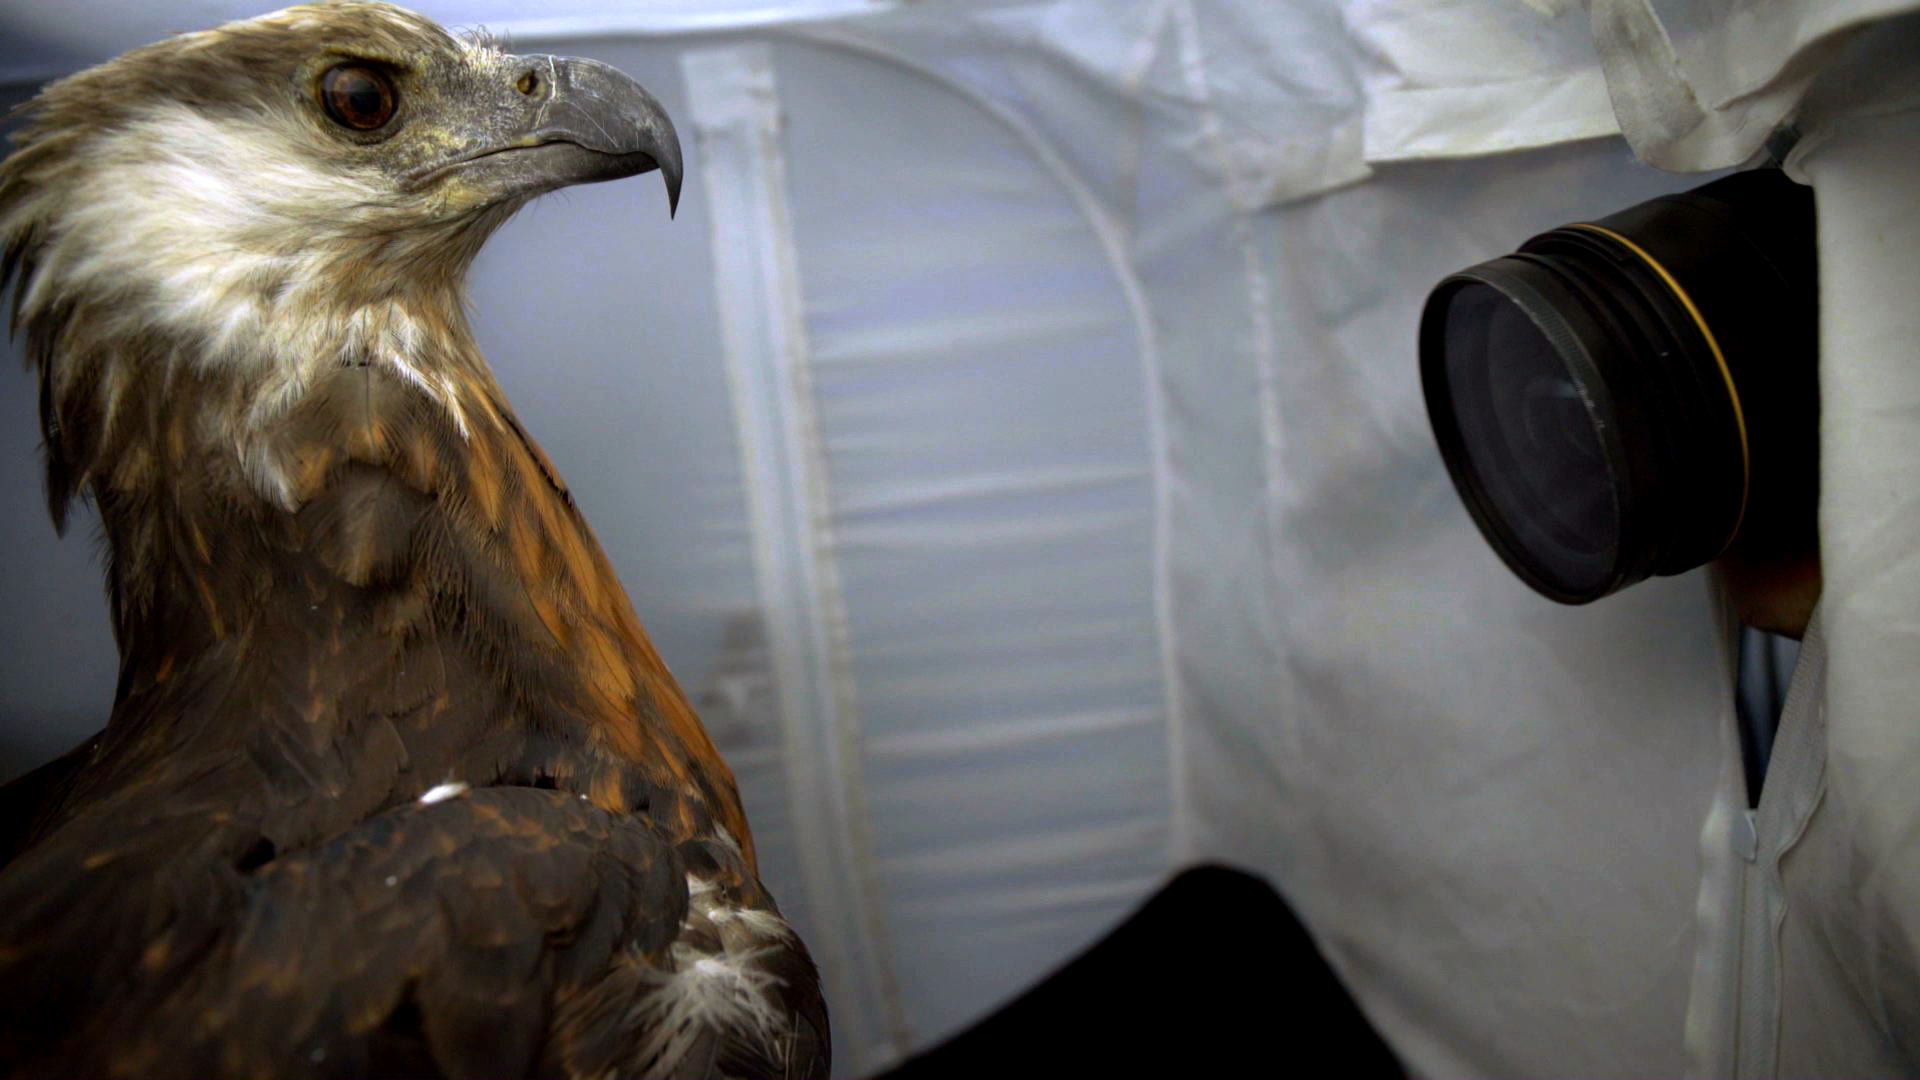 Creature Clip: Madagascar Fish Eagle - 2:06 - There are fewer than 400 Madagascar fish eagles left in the world, and the Tsimbazaza Zoo is the only place known to have them in human care. Watch Joel Sartore's photo shoot with the Madagascar fish eagle.